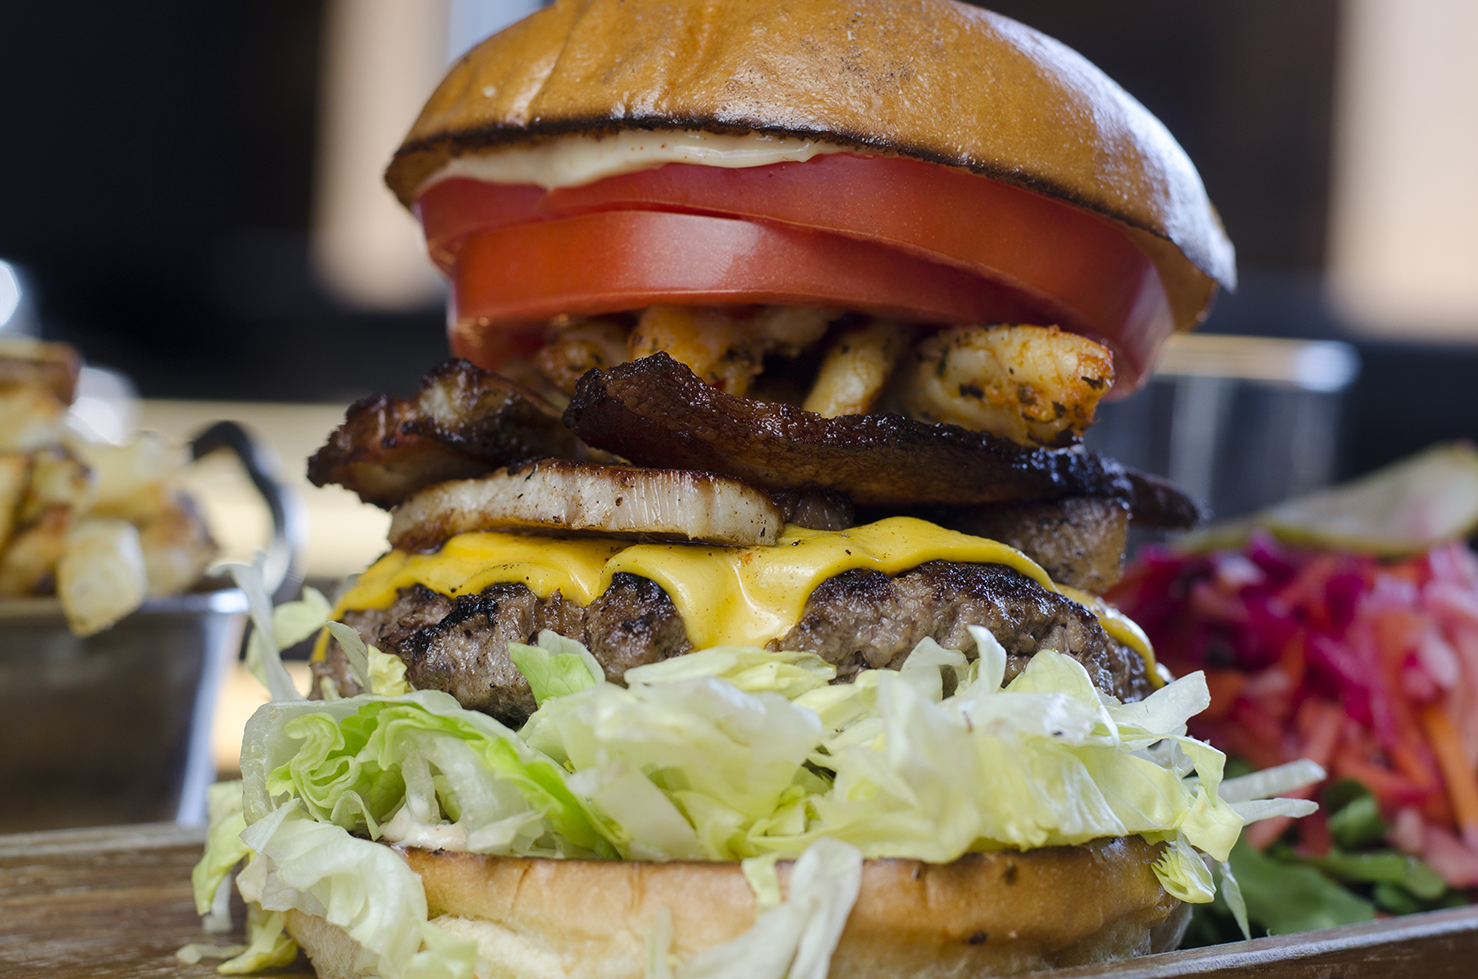 When your appetite calls for a little bit of everything, the Eureka burger fits the bill.